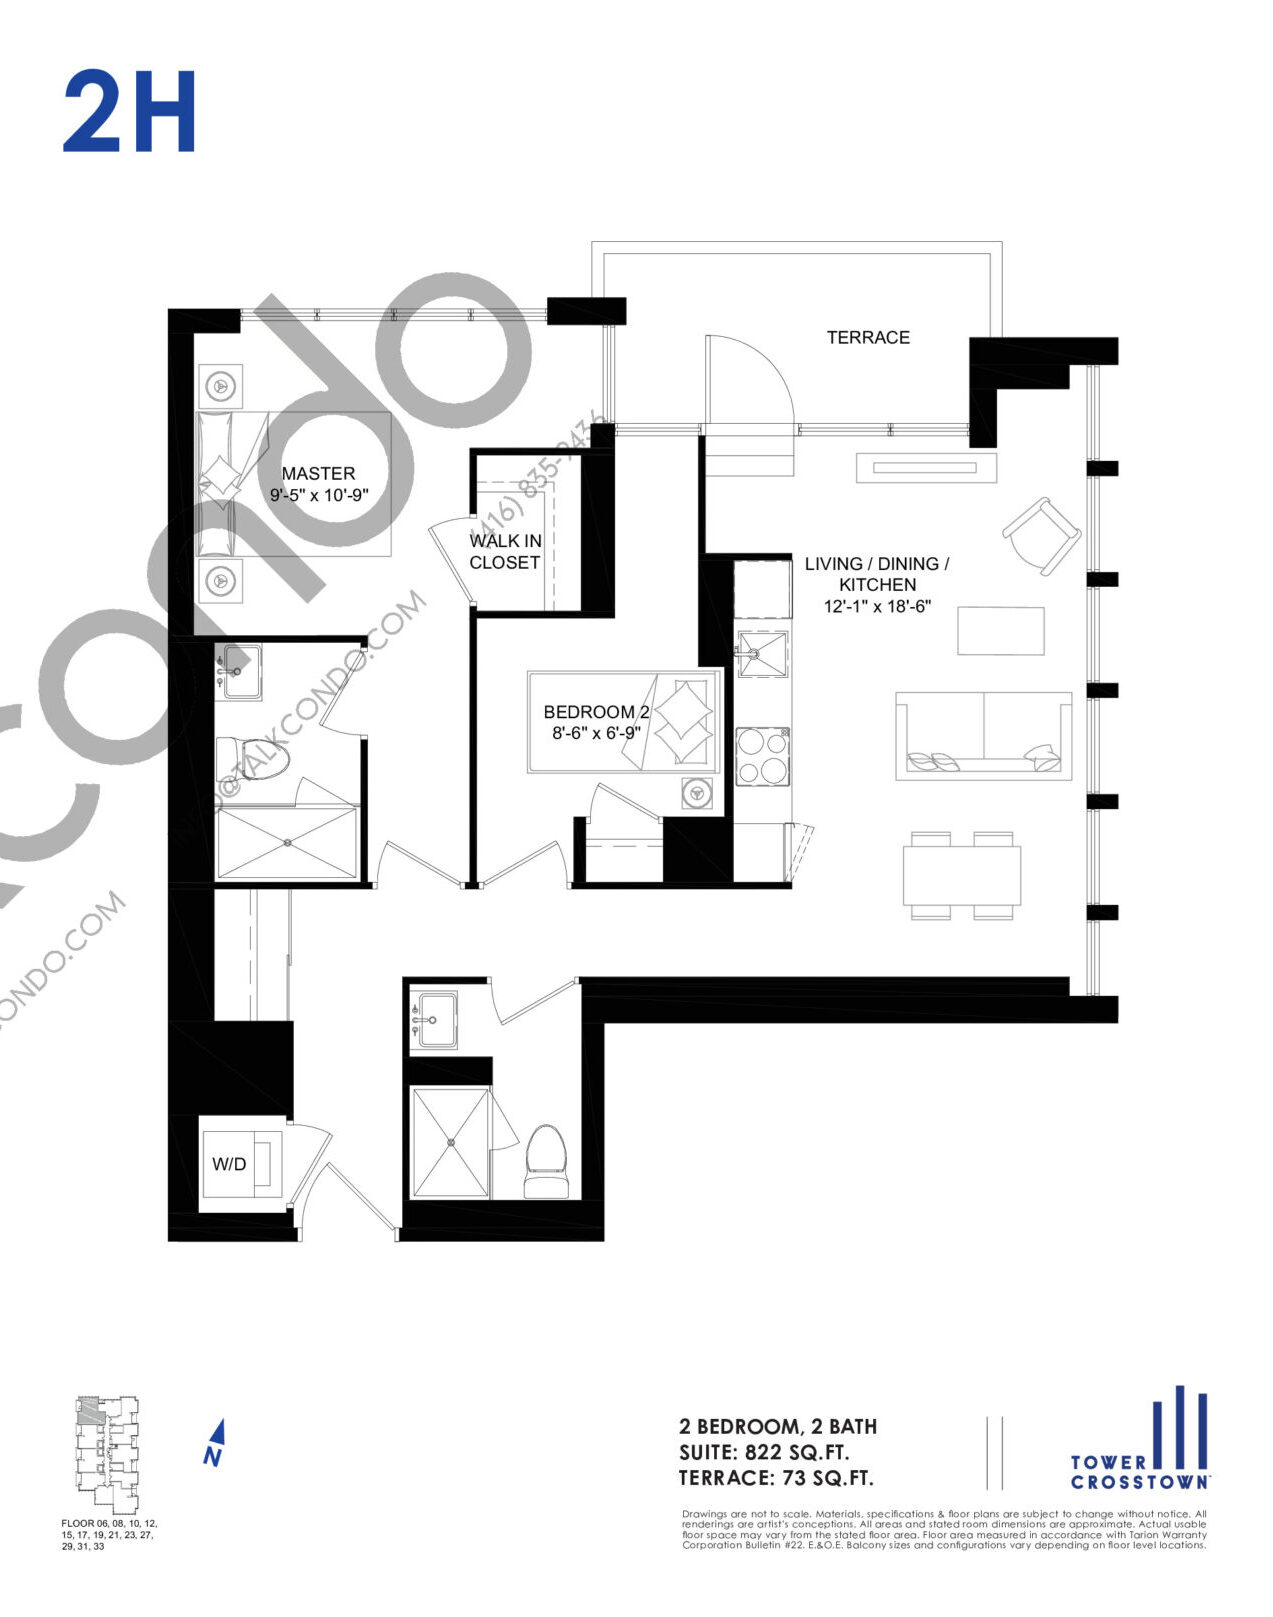 2H Floor Plan at Crosstown Tower 3 Condos - 822 sq.ft